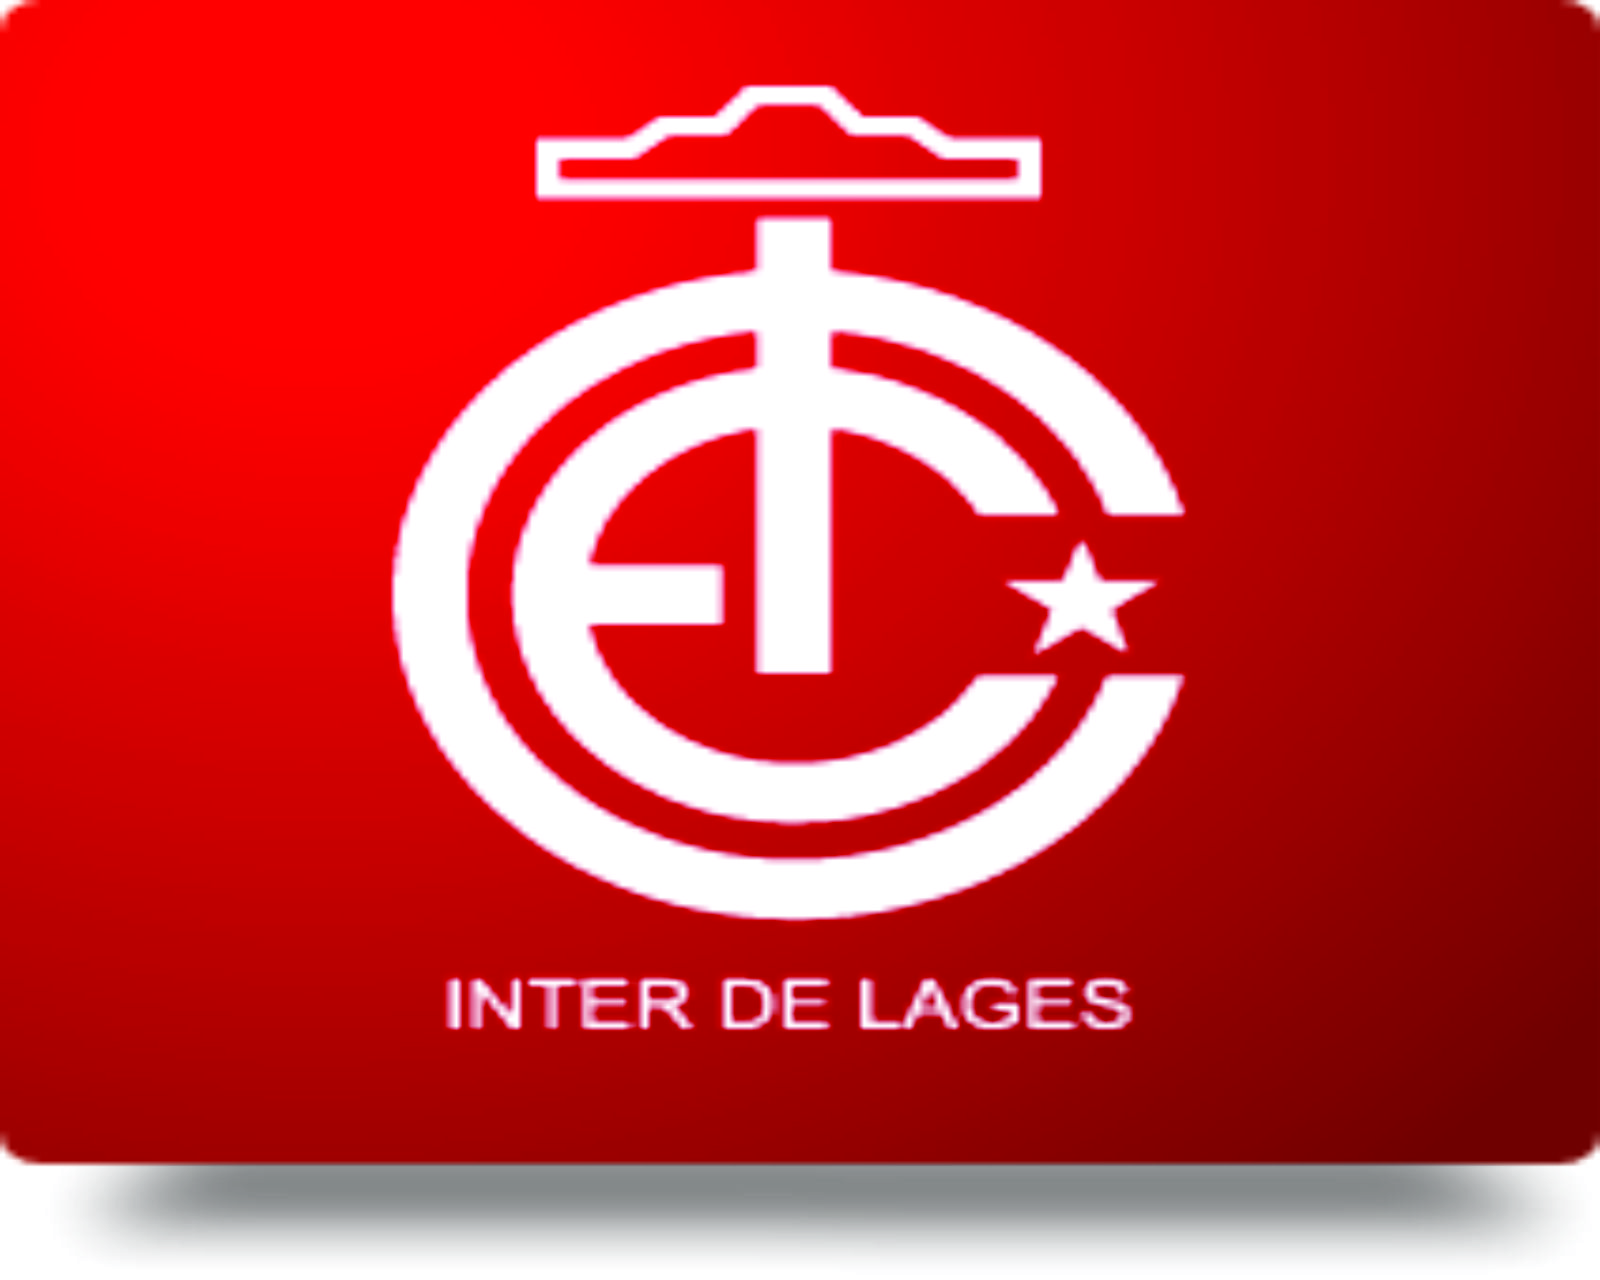 Internacional de Lages